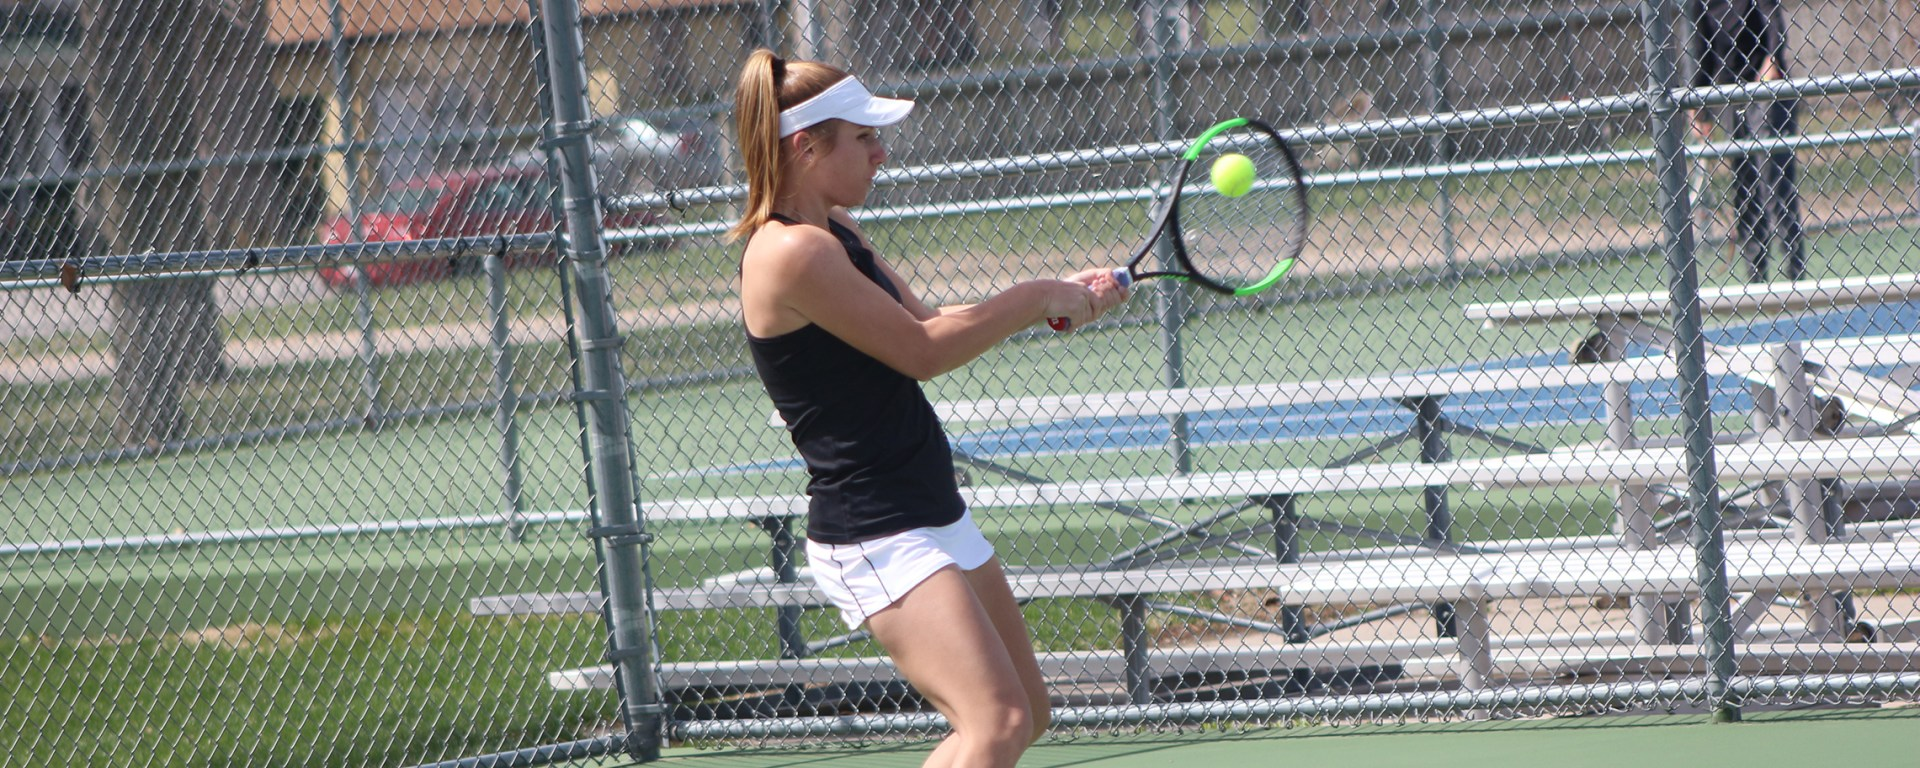 Senior Kelsey Brown keeps her eye on the ball to return it over the net in a match against Northwestern College. She defeated her opponent, keeping her undefeated record in GPAC play.